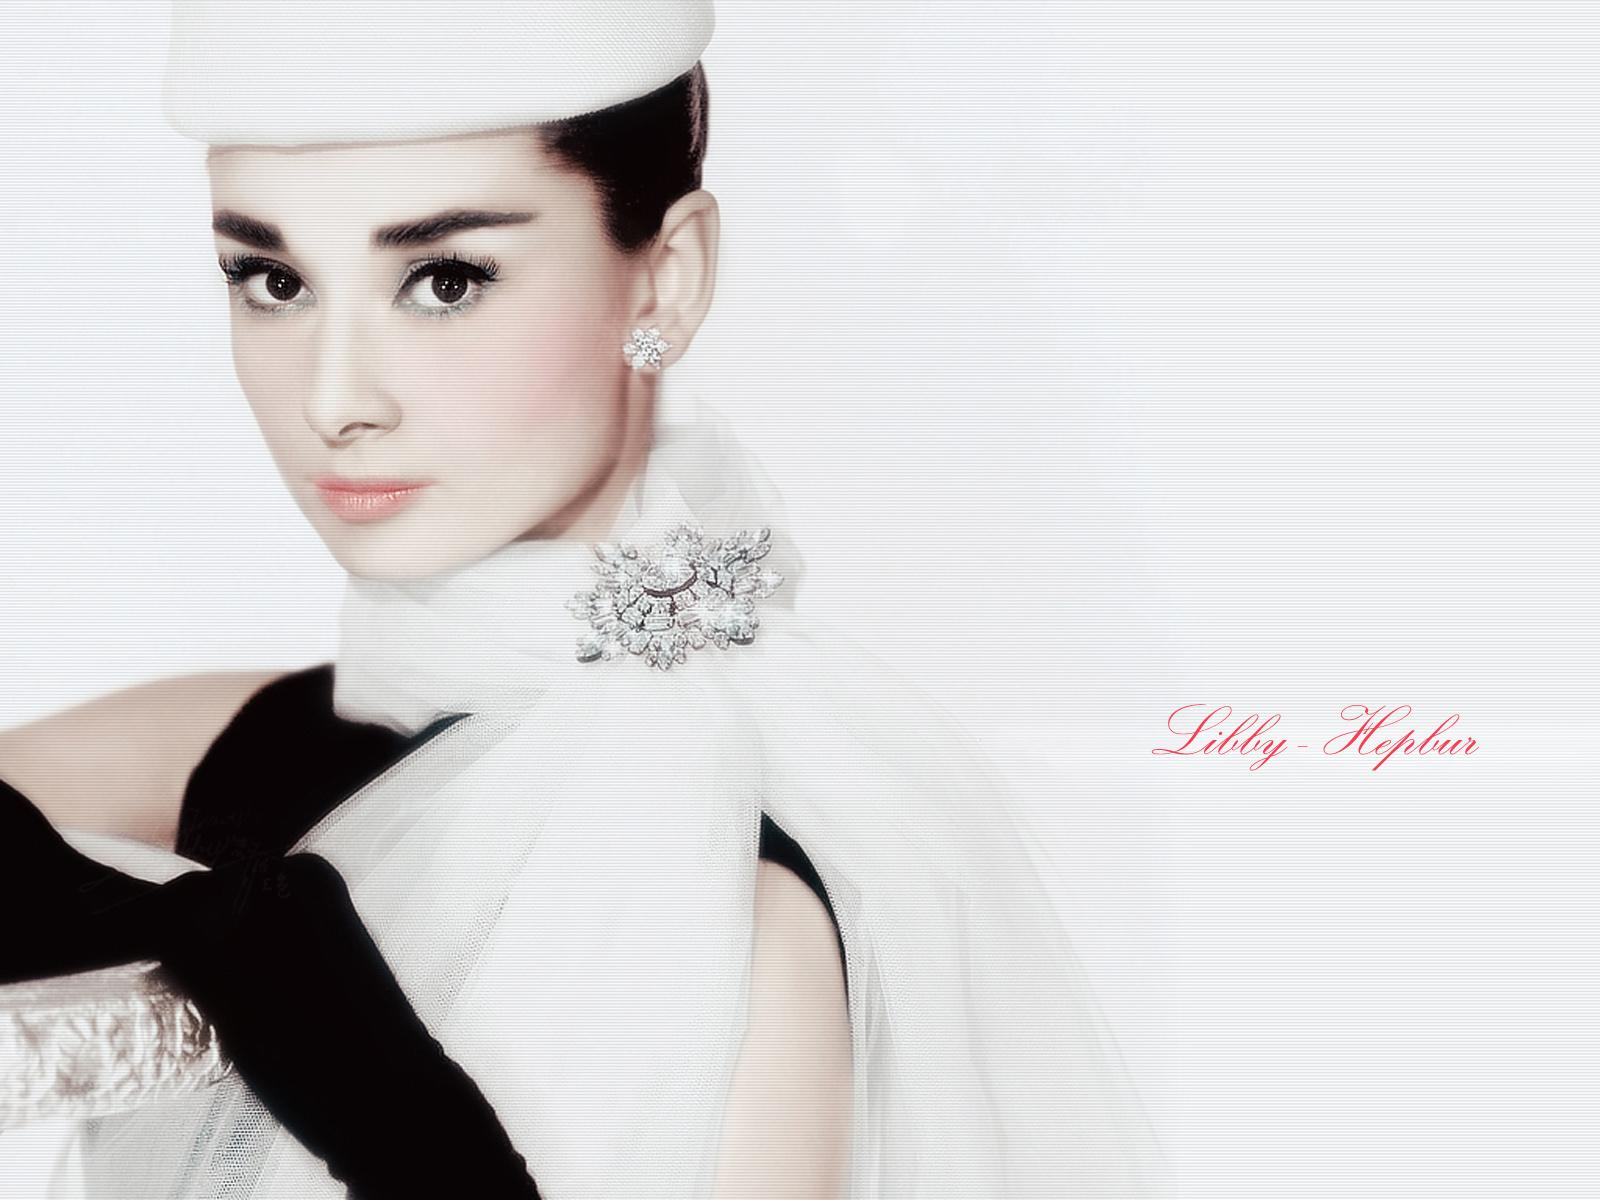 17 2015 By Stephen Comments Off on Audrey Hepburn Wallpapers HD 1600x1200